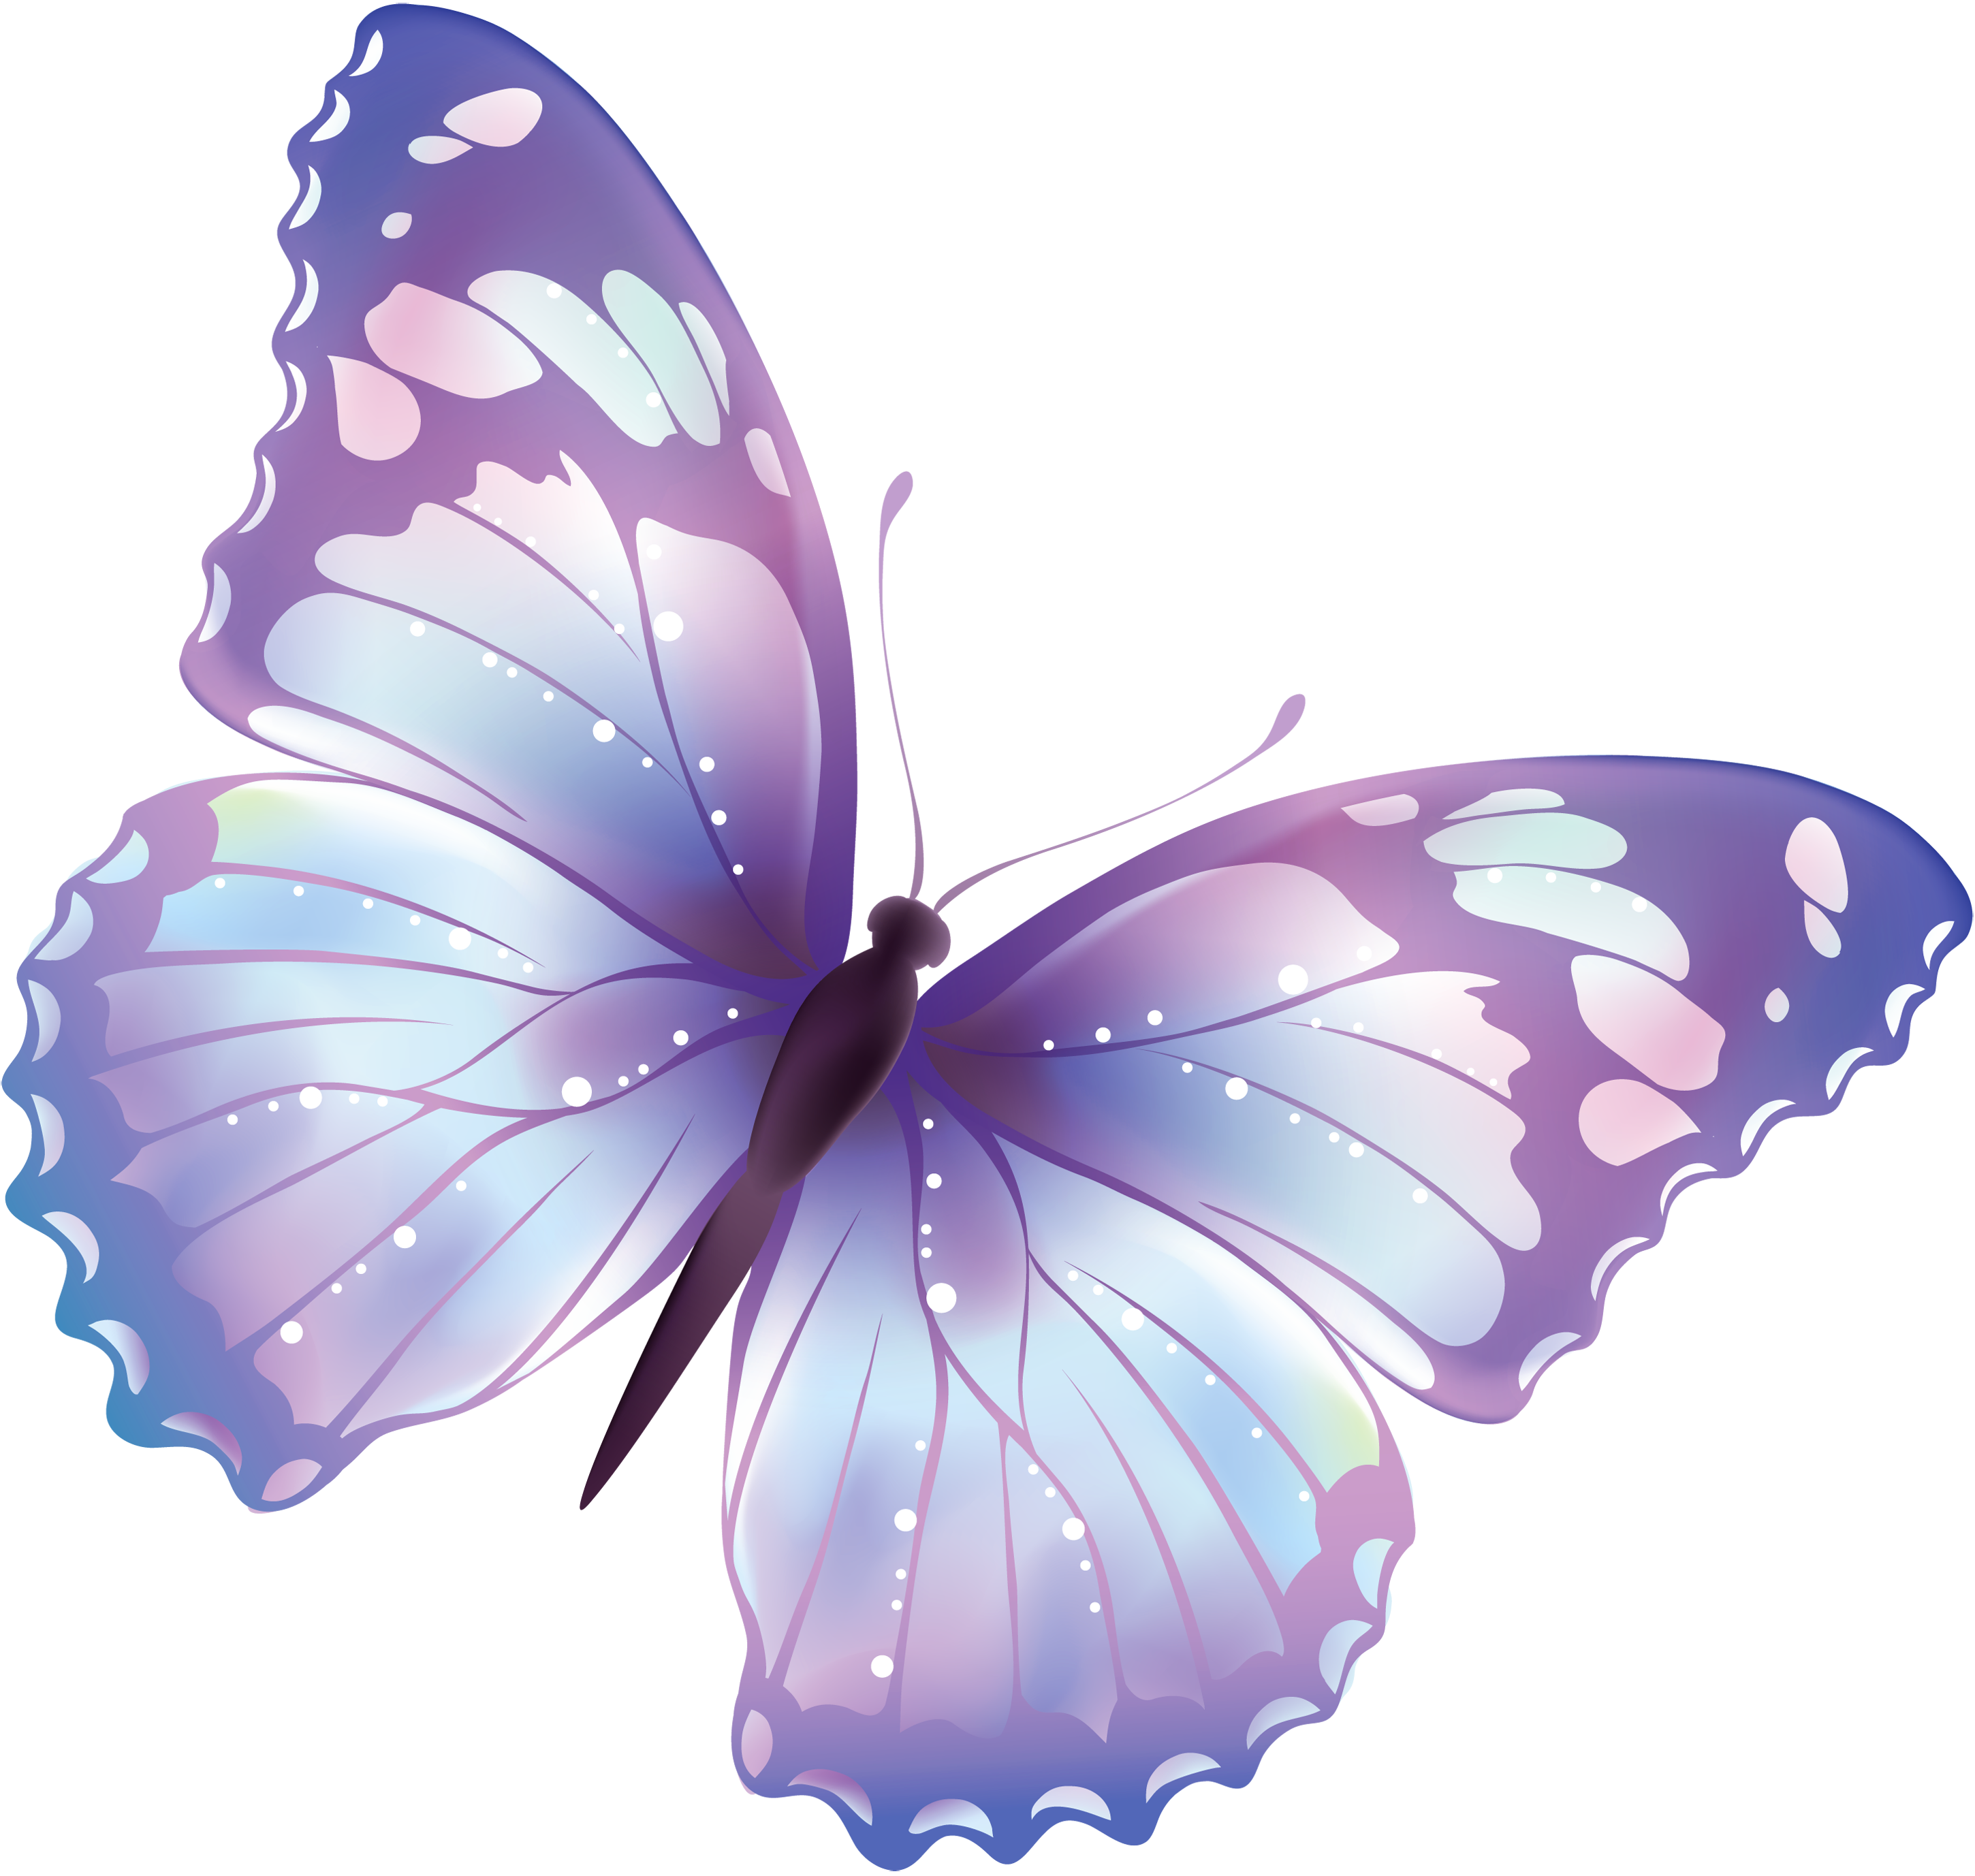 Flying Butterfly Png Image   Flying Butterfly Png Image